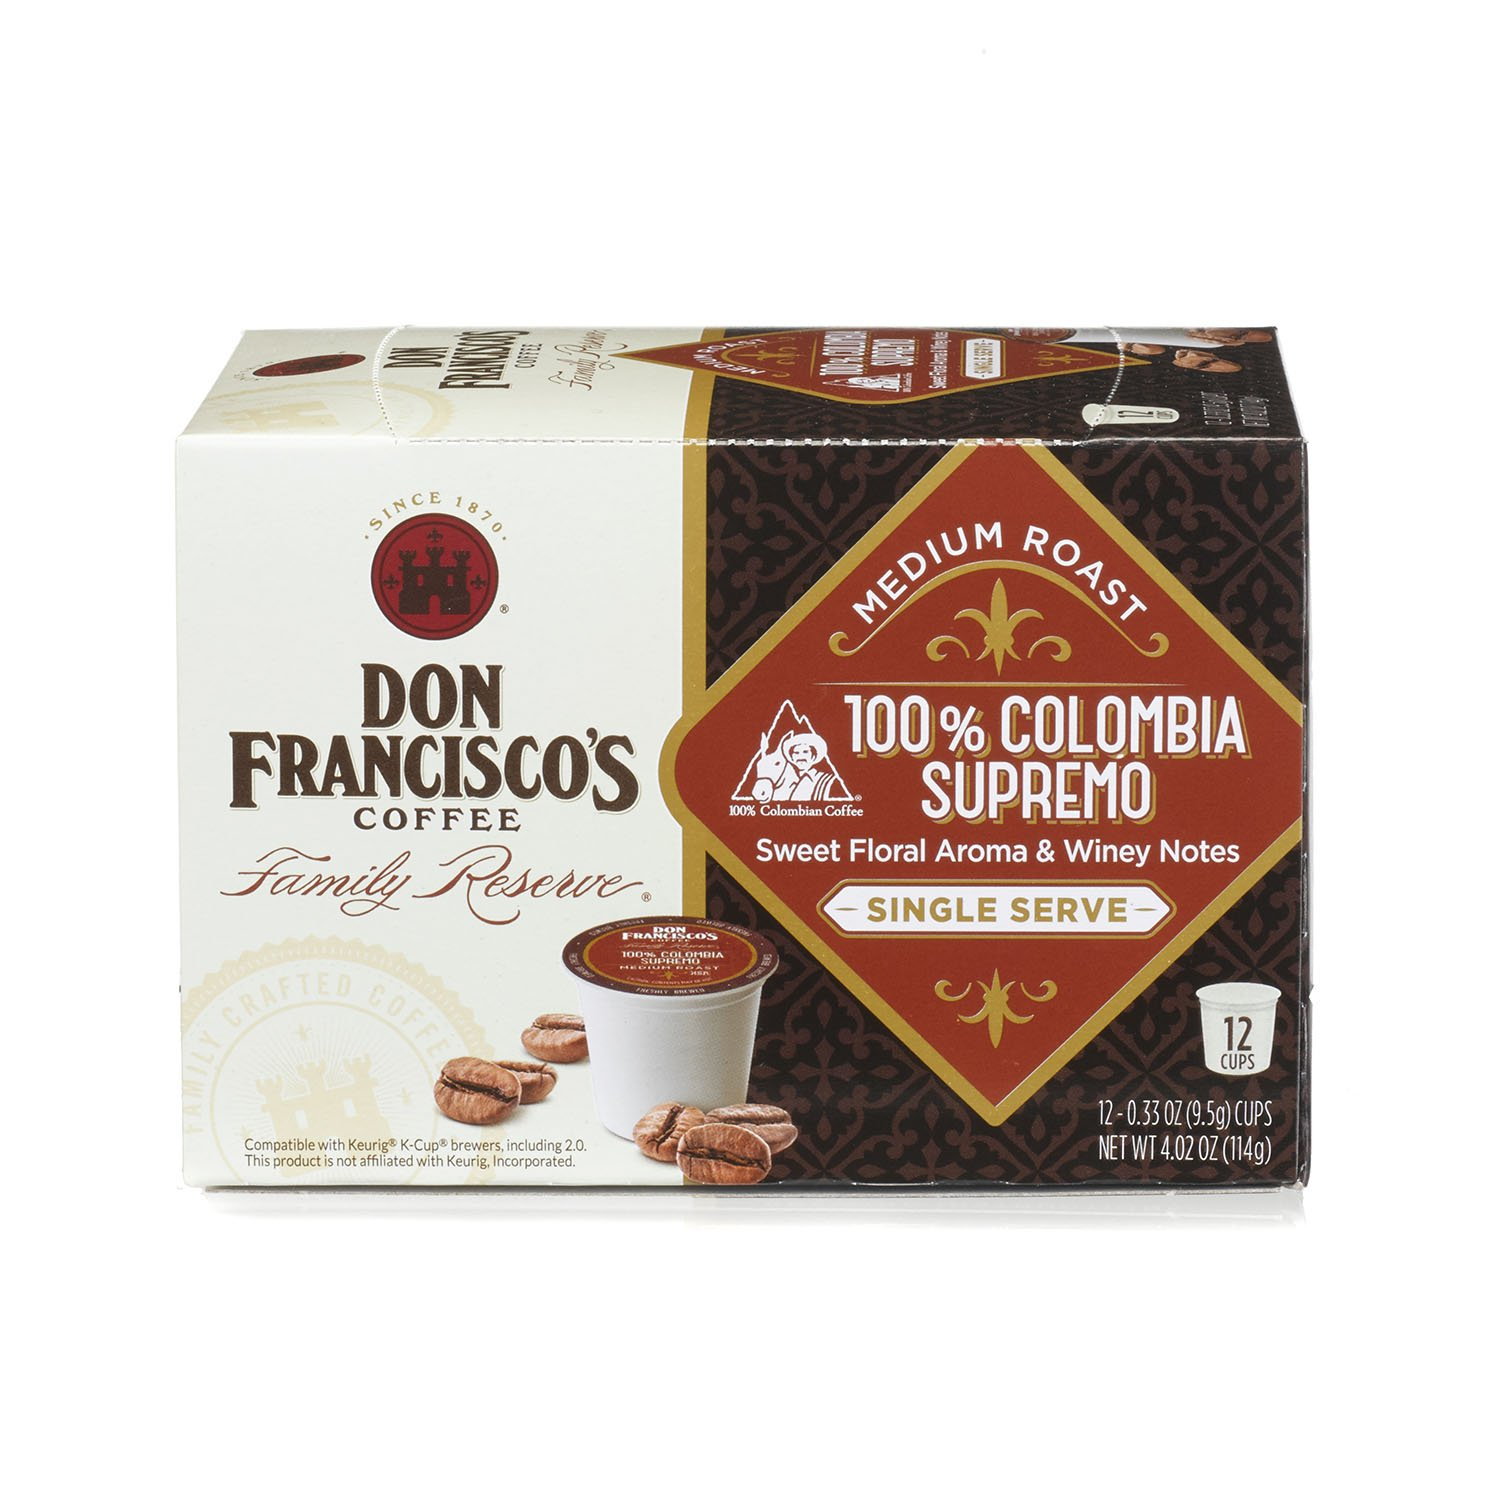 Don Francisco's 100% Colombia Supremo, Premium 100% Arabica Coffee Beans, Medium Roast, Single Serve Pods for Keurig,  Family Reserve, 6 -12 Count (72 Total) by Don Francisco